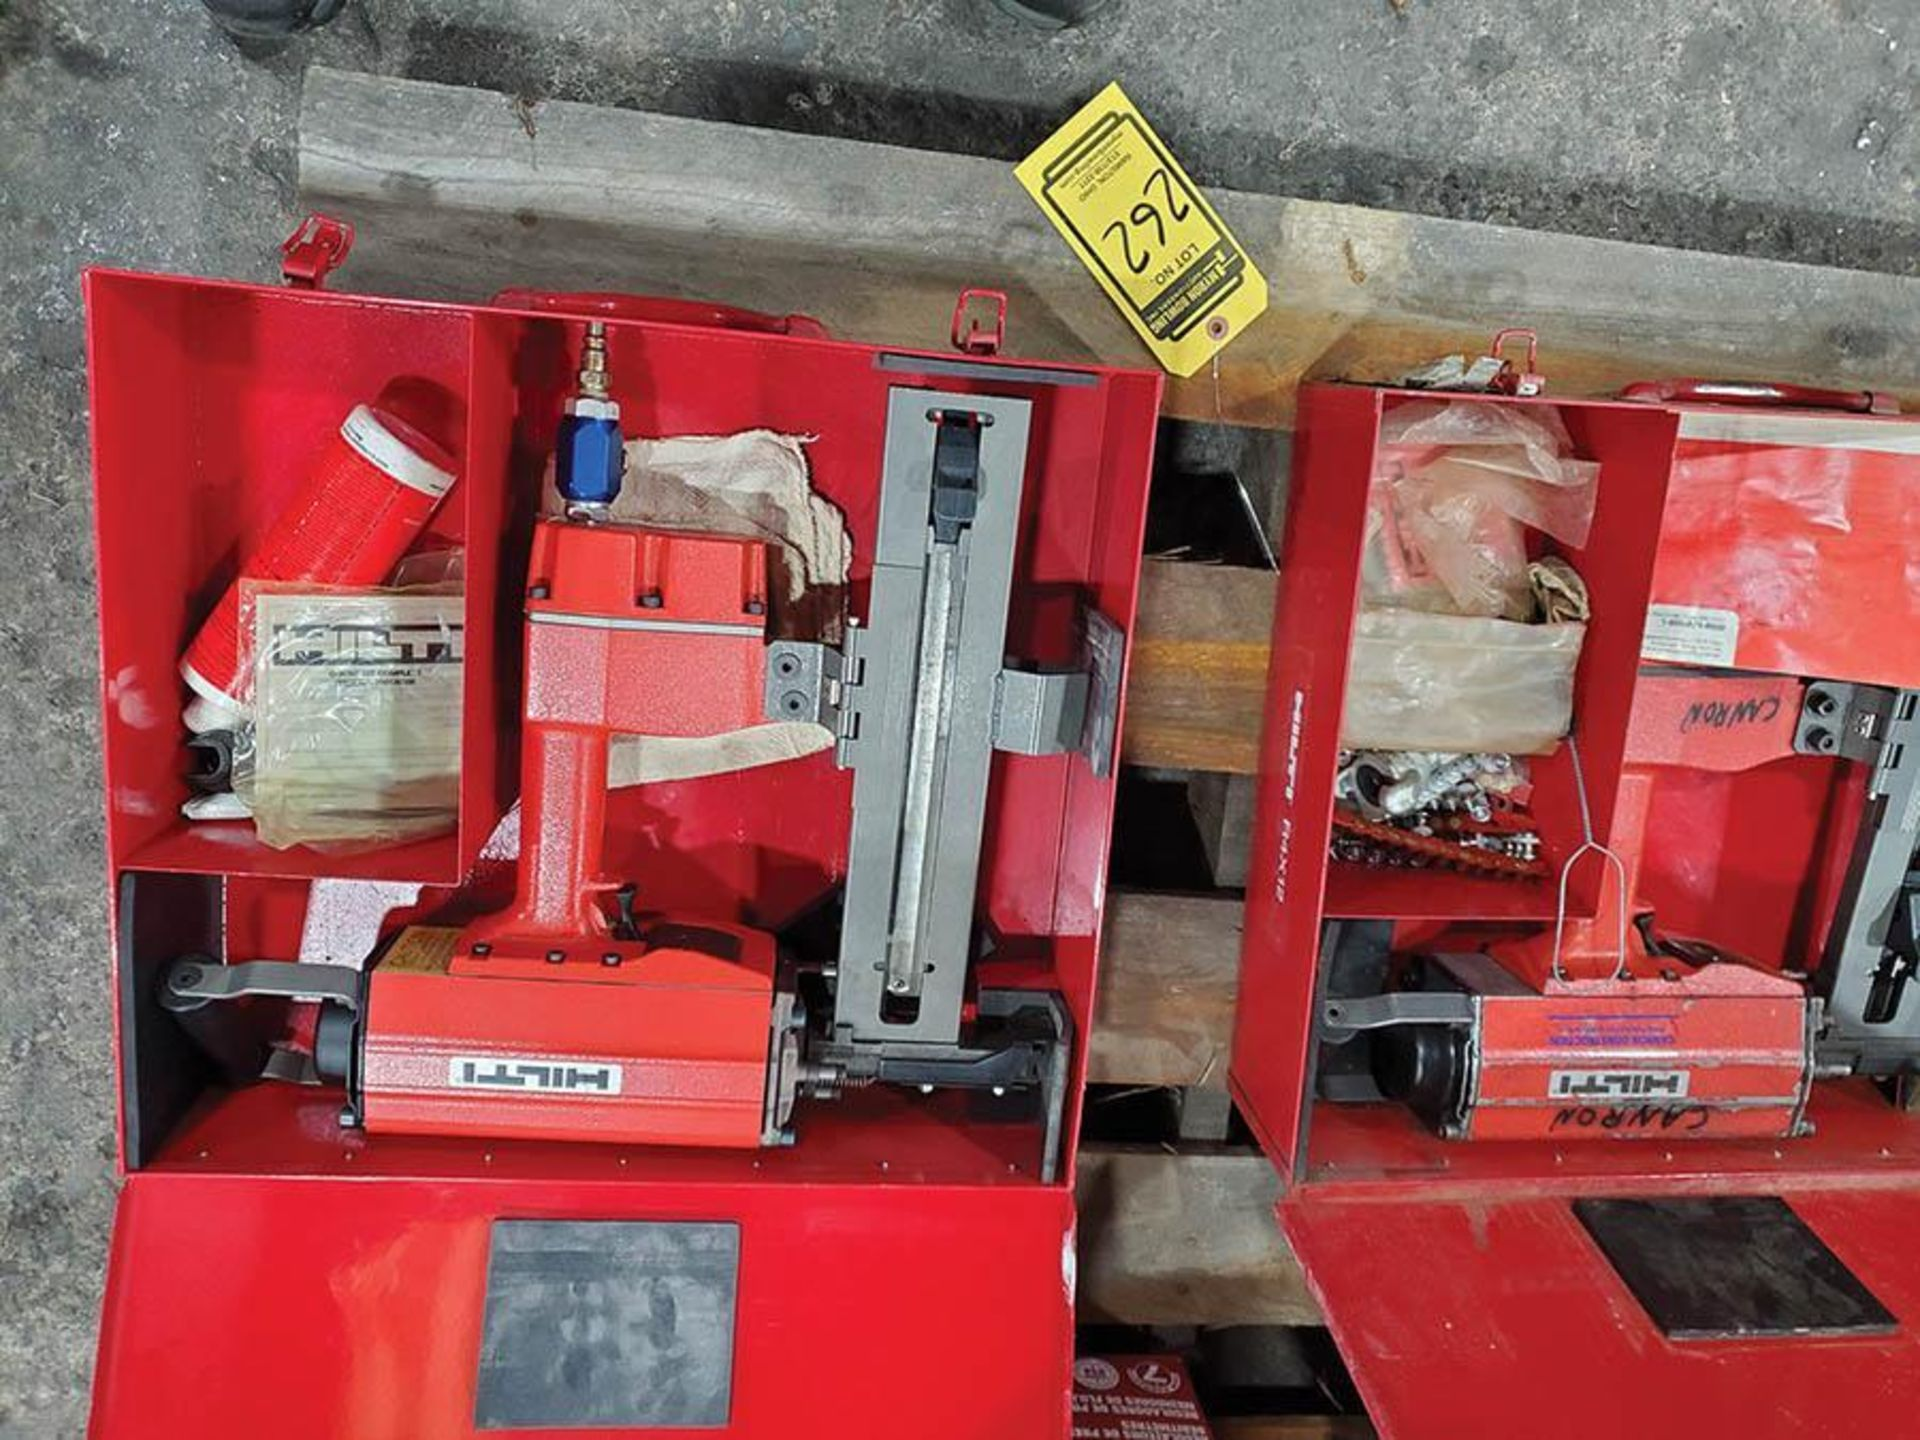 LOT ON PALLET, (2) HILTI R4X12 PNEUMATIC CONCRETE STEEL NAILERS - Image 2 of 6